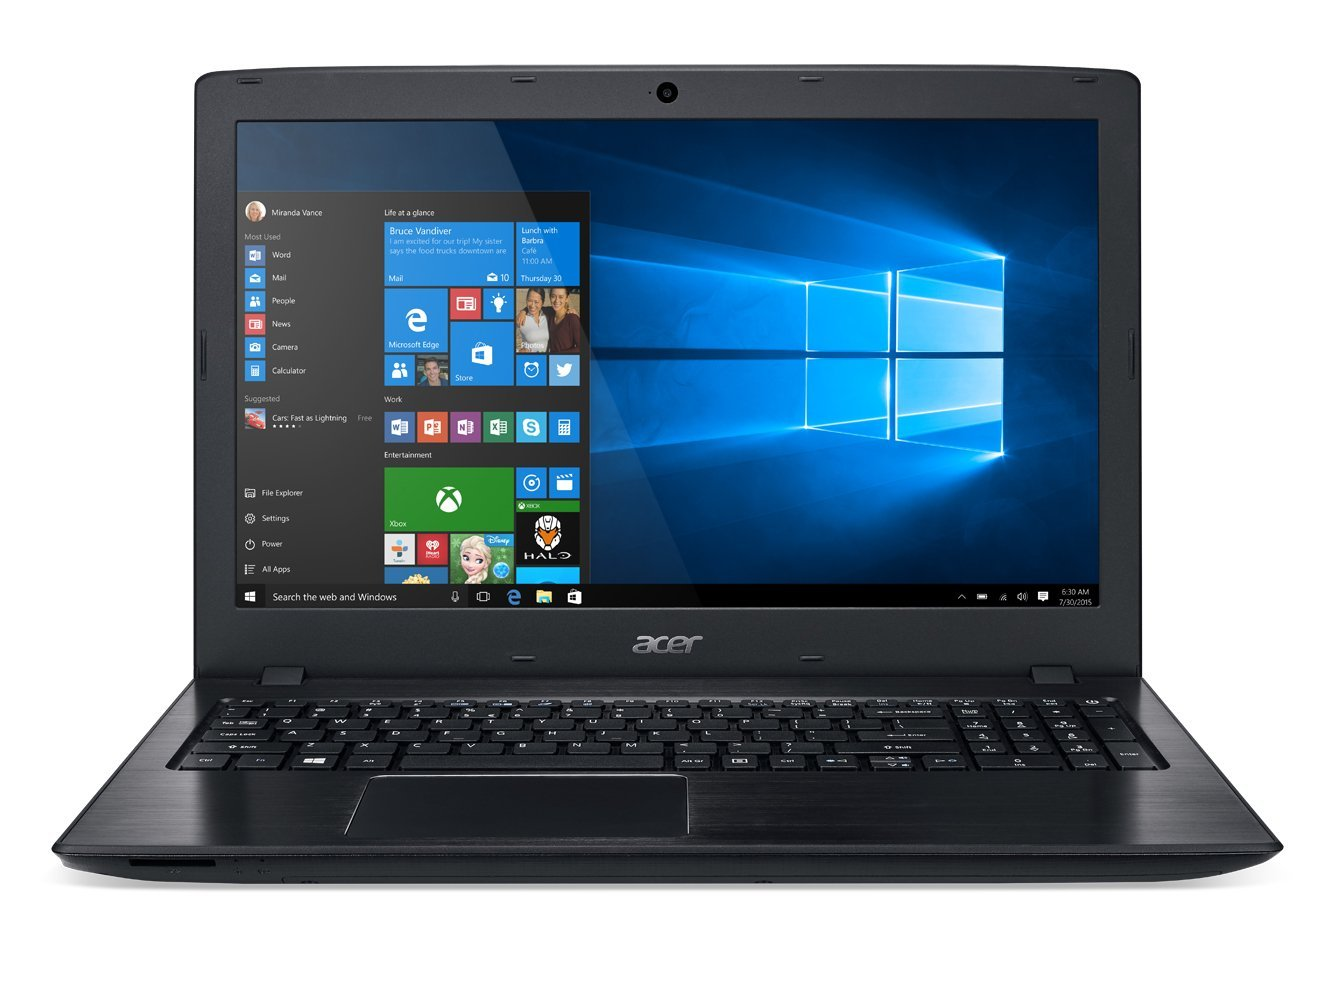 ACER ASPIRE E5-575 LAPTOP Reviews, Specification, Battery, Price